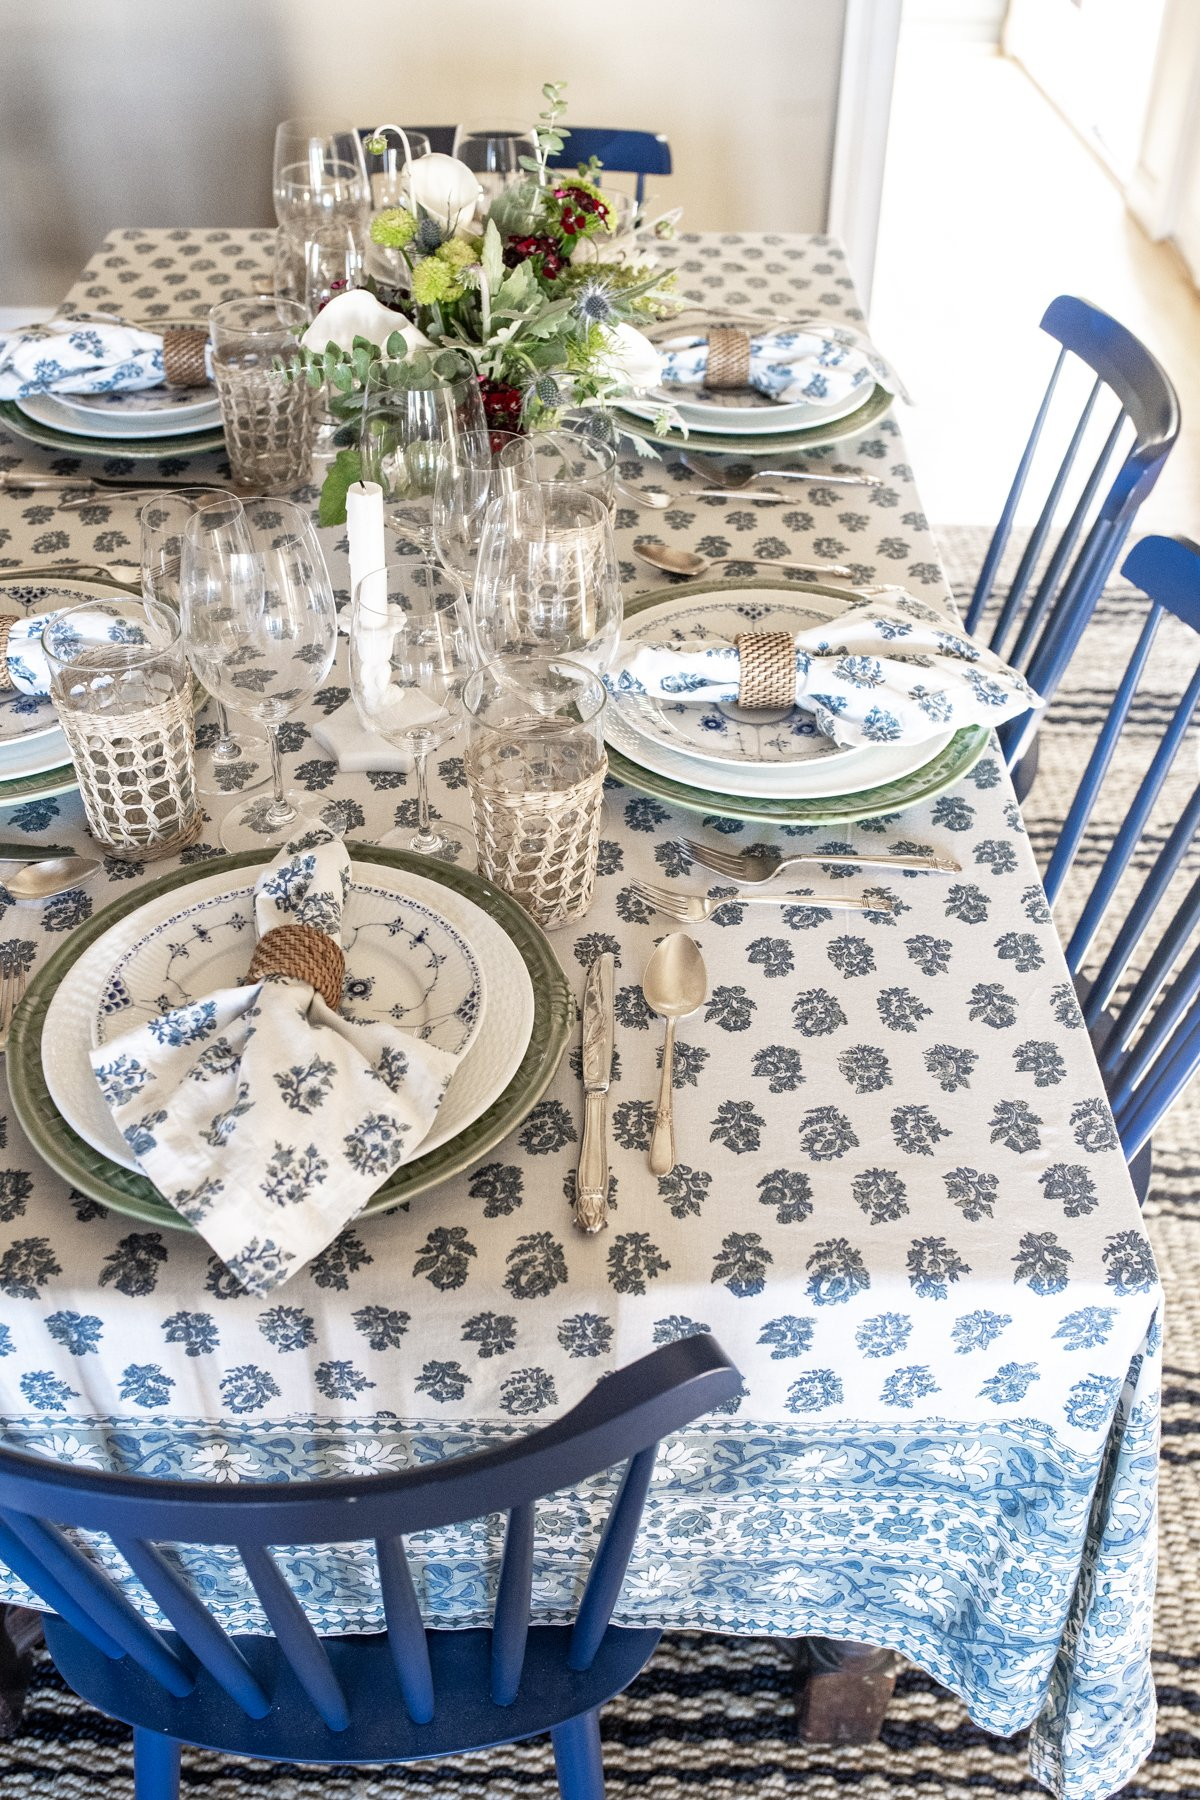 Spring Dinner Party Table x Pottery Barn Cover x Stacie Flinner-1